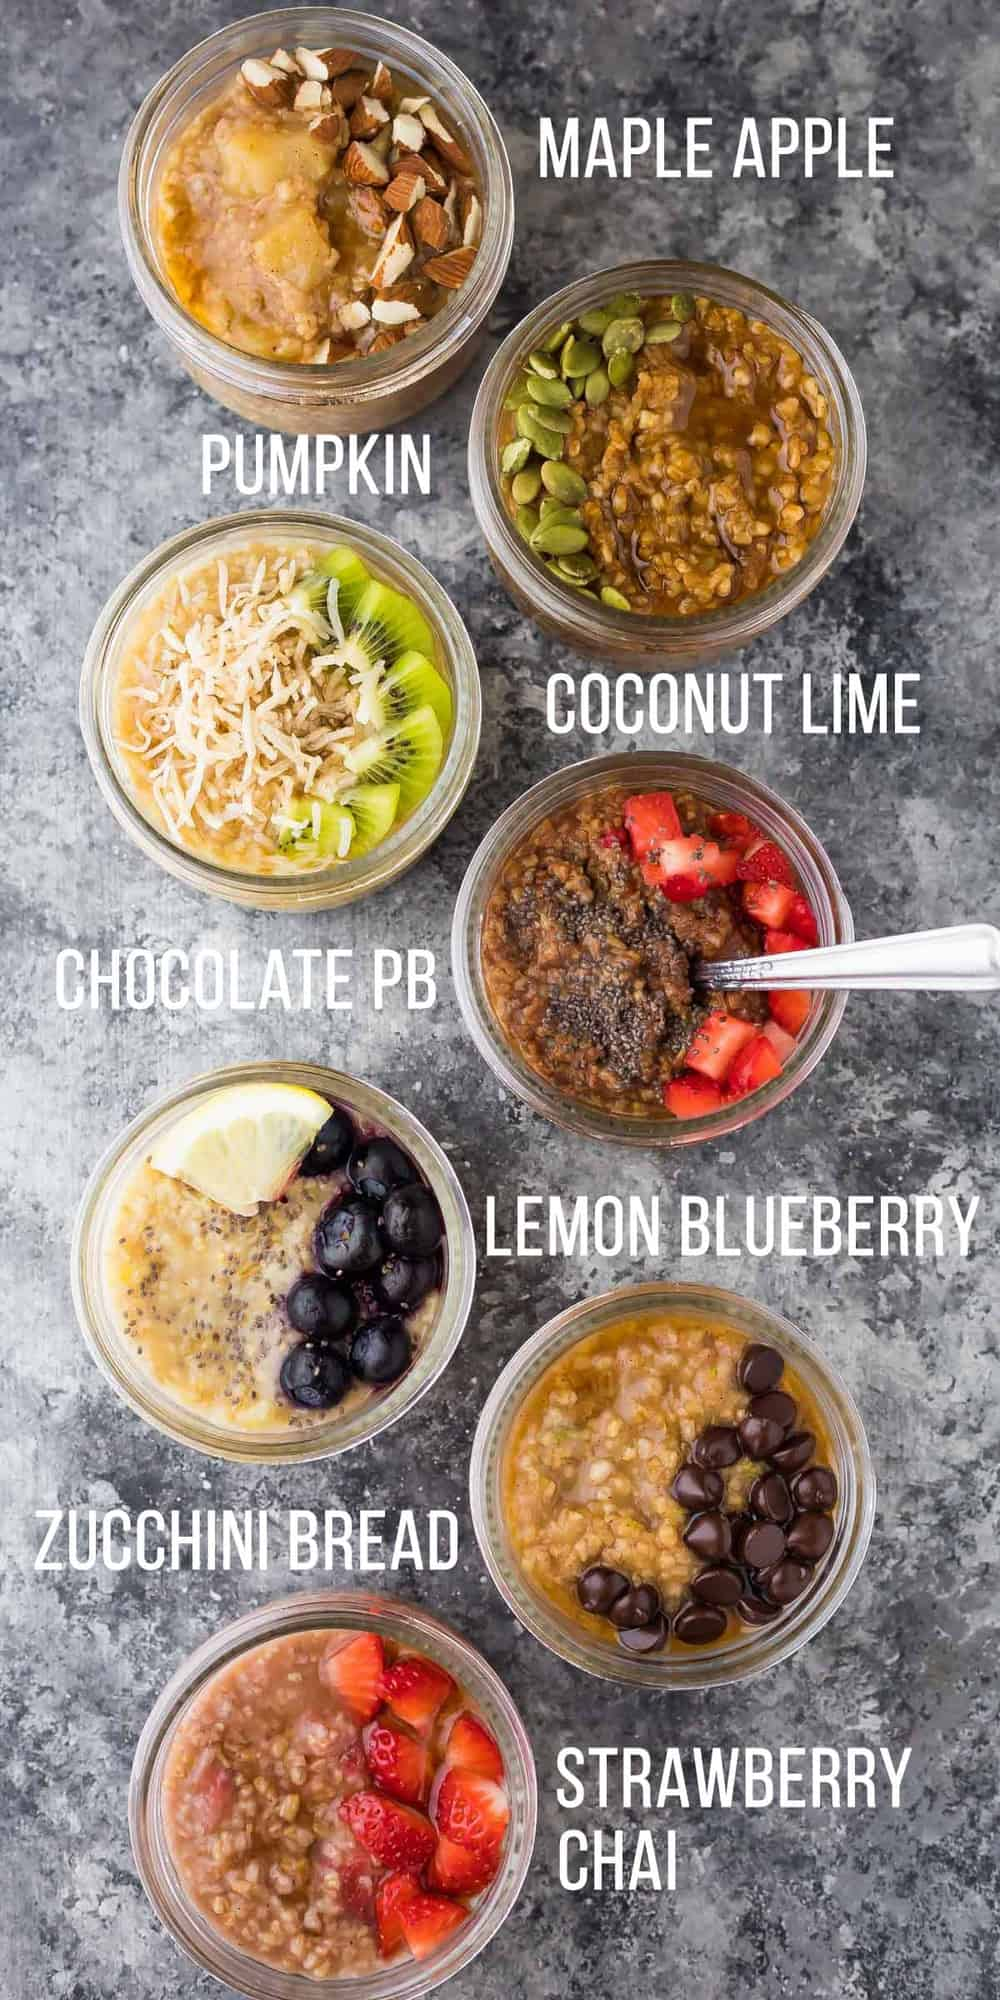 7 healthy steel cut oats recipes that are easy to make ahead and keep in the fridge or freezer for easy breakfasts. Plus instructions on how to cook steel cut oats in the Instant Pot, slow cooker or on the stovetop. #breakfast #oatmeal #instantpot #mealprep #freezermeal #steelcutoats